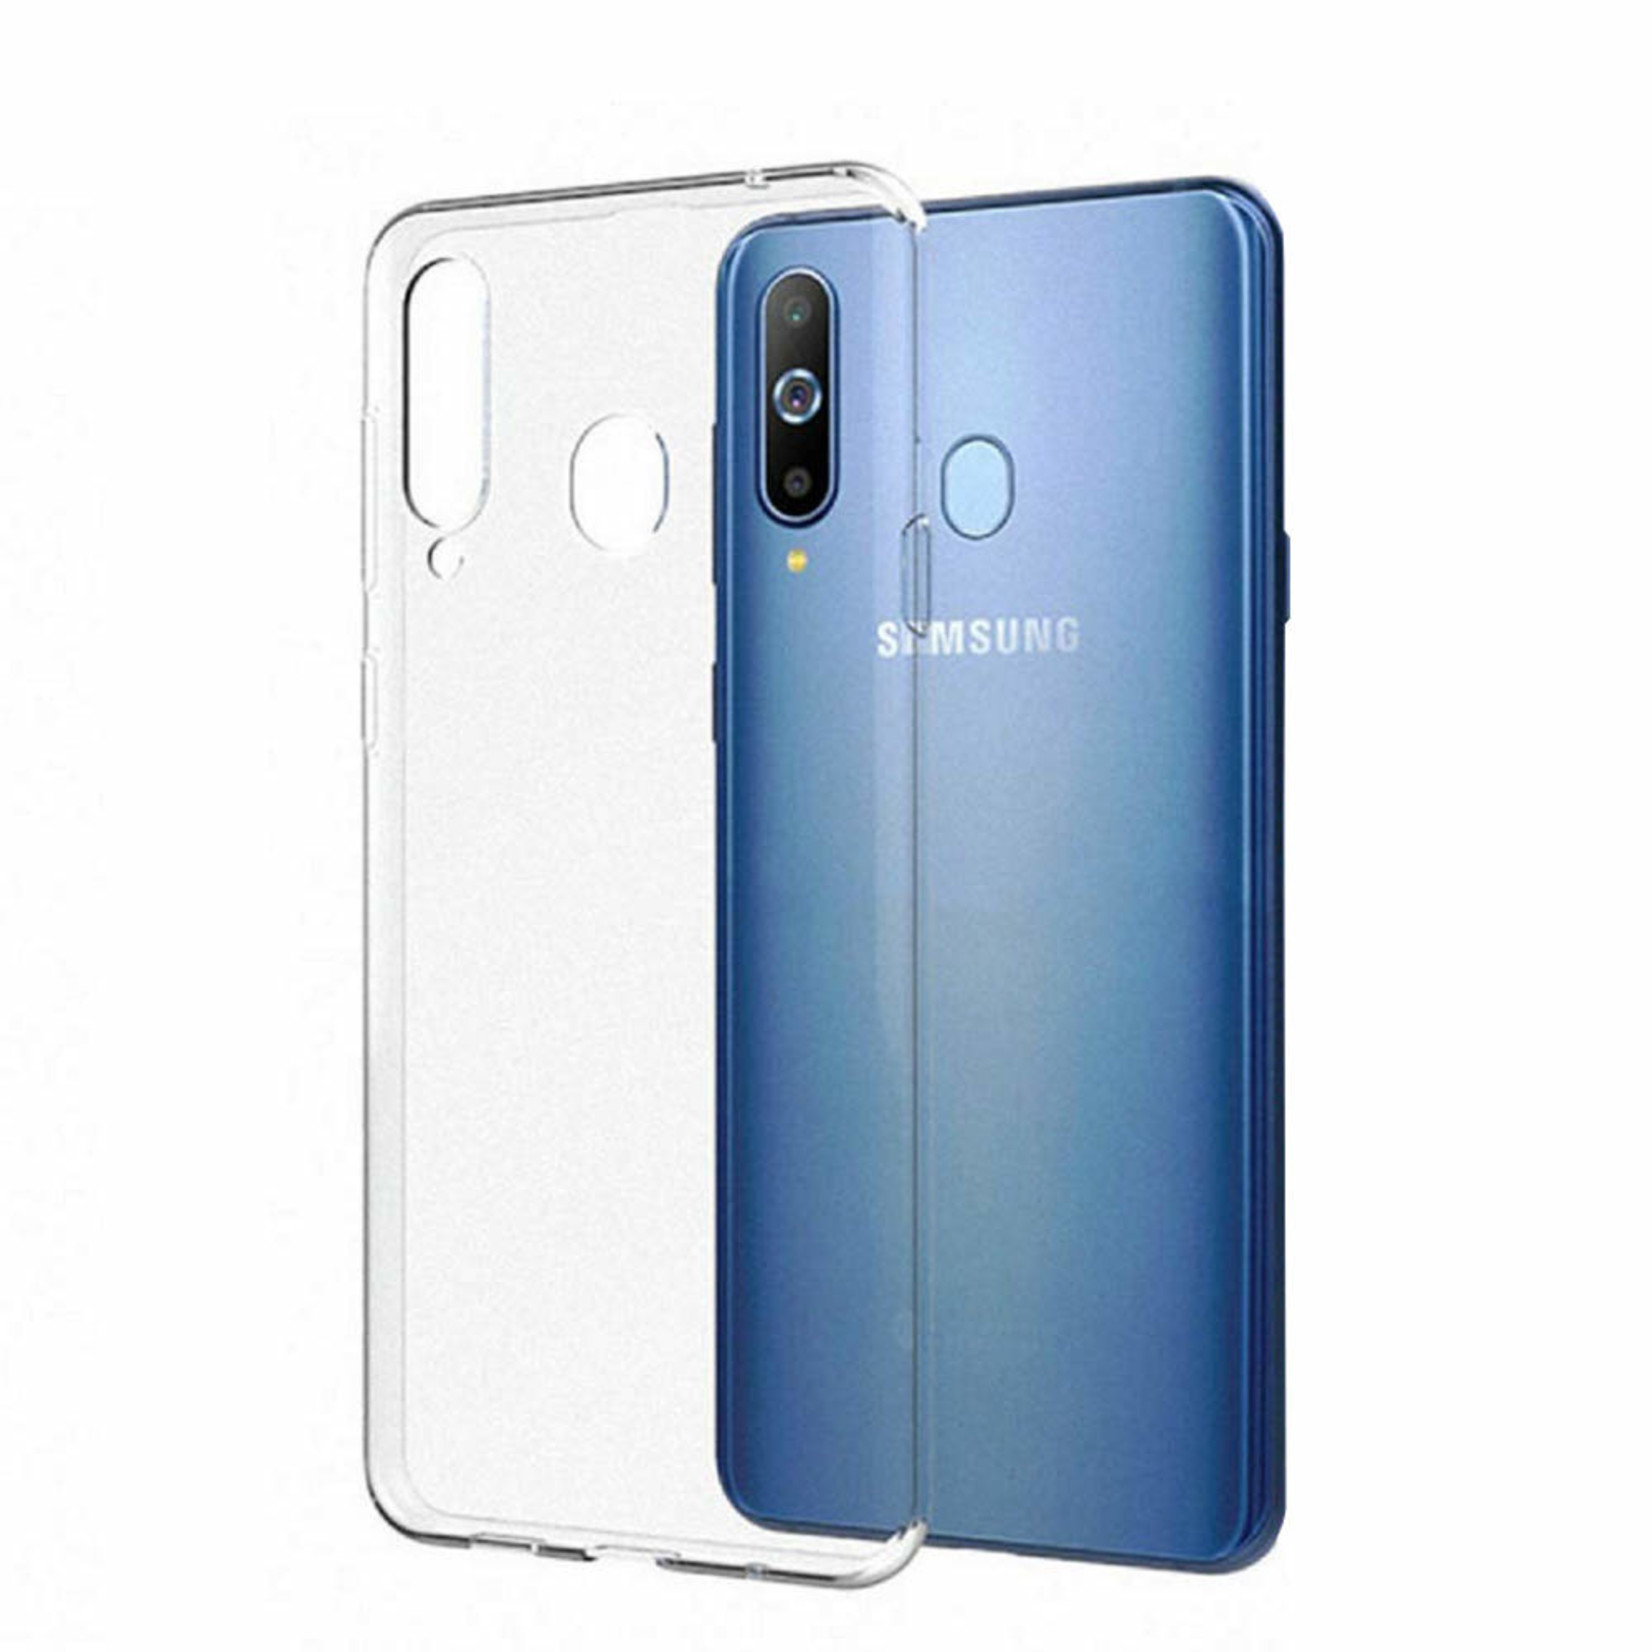 Colorfone Hoesje Coolskin3T voor Samsung M20 Transparant Wit